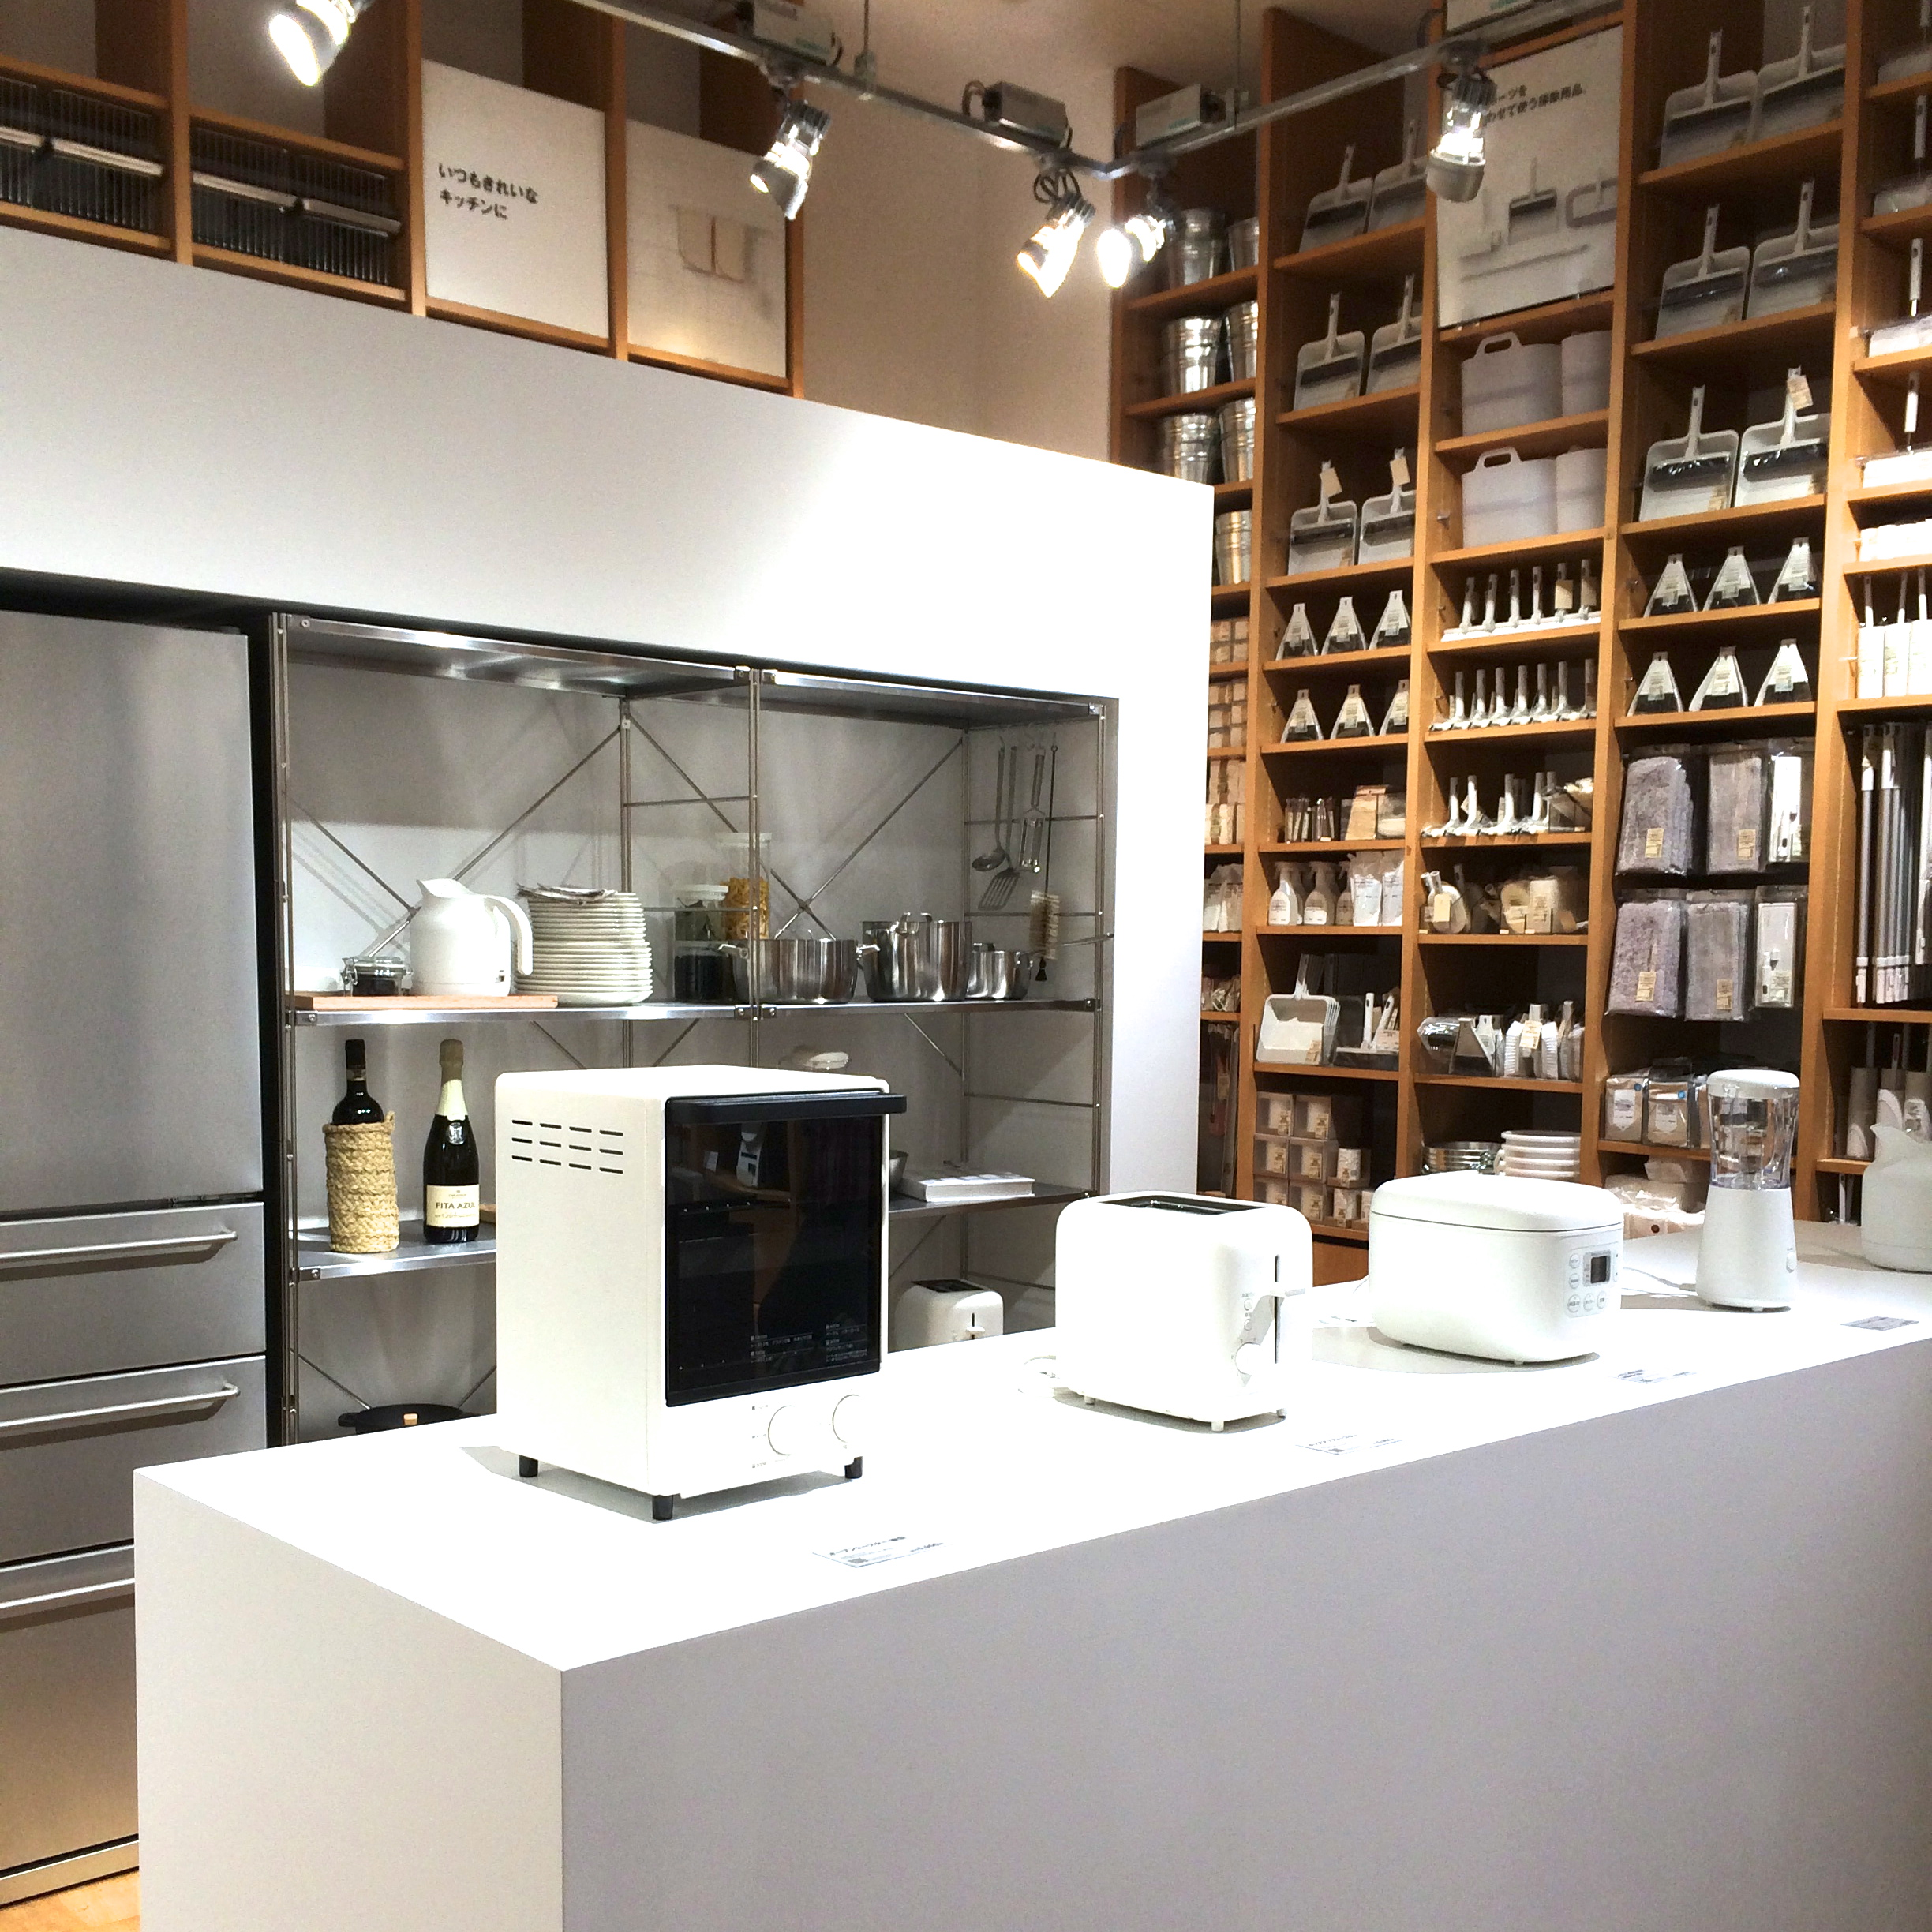 MUJI kitchen appliances, including a rice cooker, toaster, blender, and coffee grinder. all in a beautiful bright white.